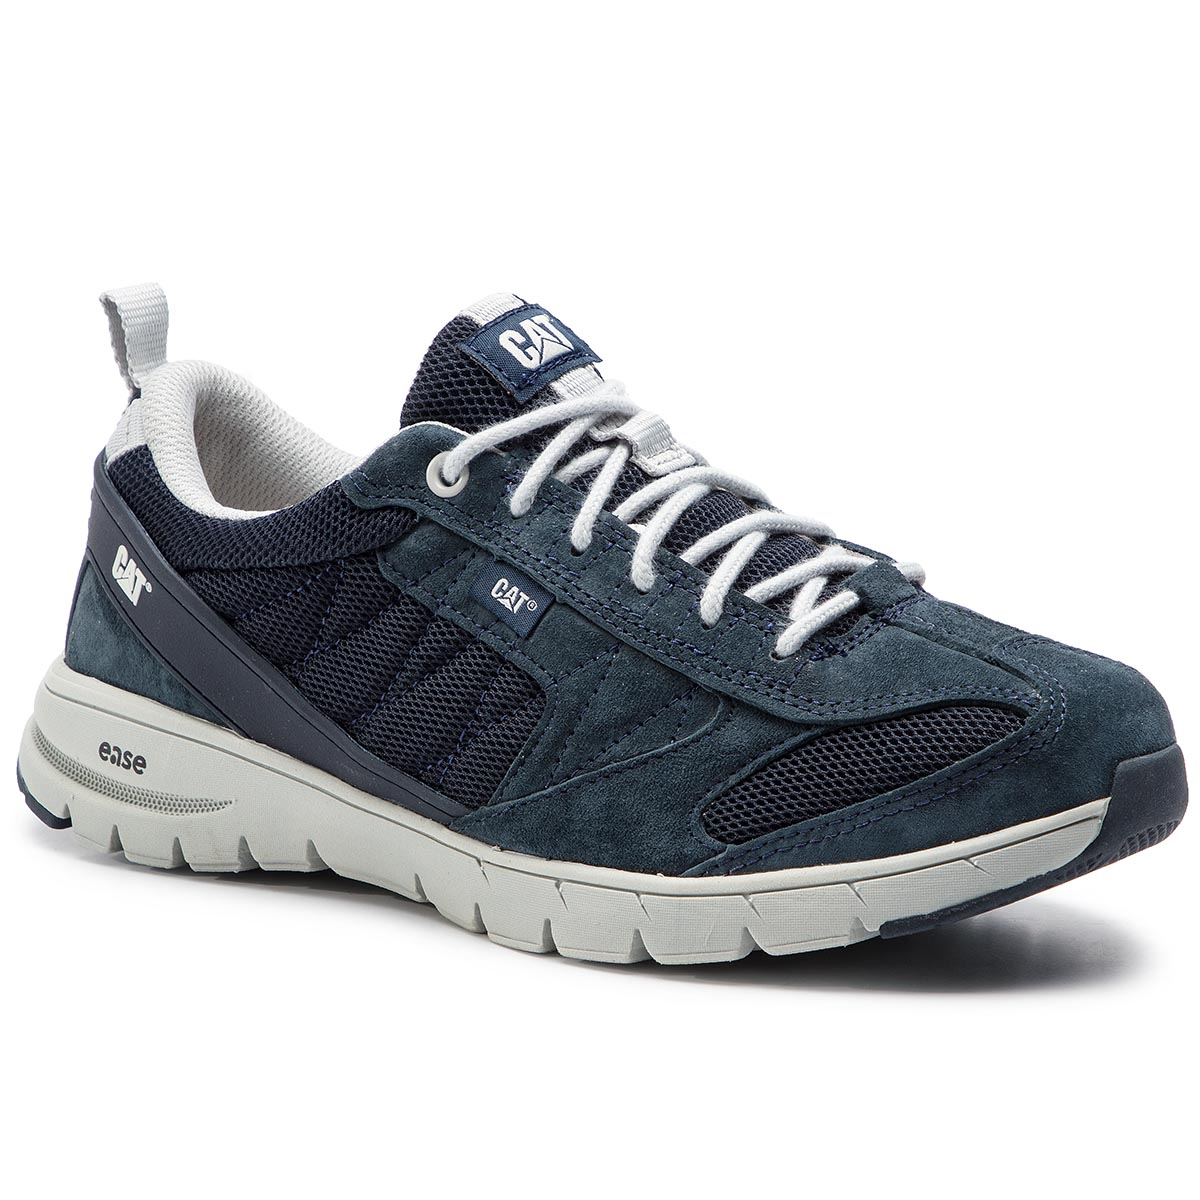 Sneakers CATERPILLAR - Mythos P721112 Navy